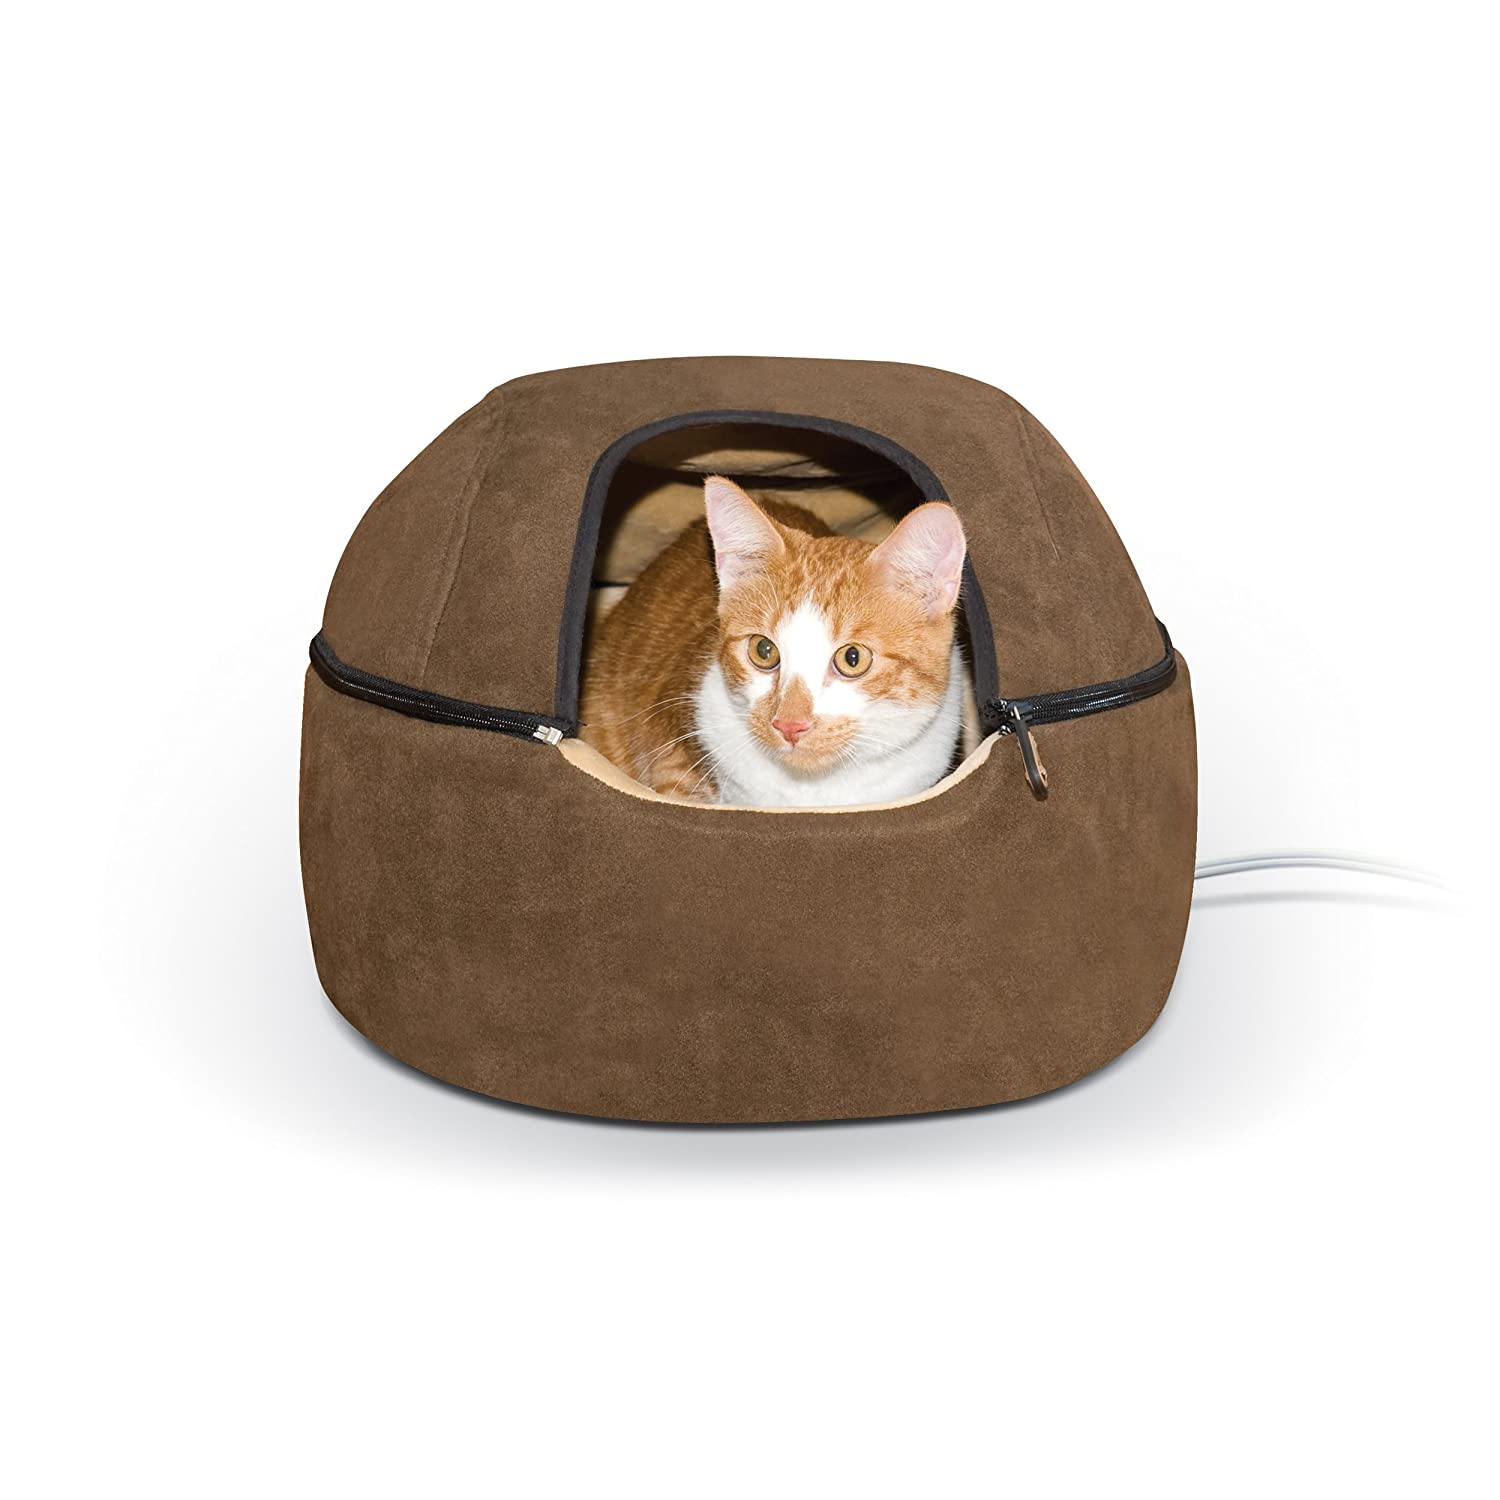 K&H Manufacturing 4W Thermo-Kitty Dome Bed, Large/20-Inch, Chocolate 3898